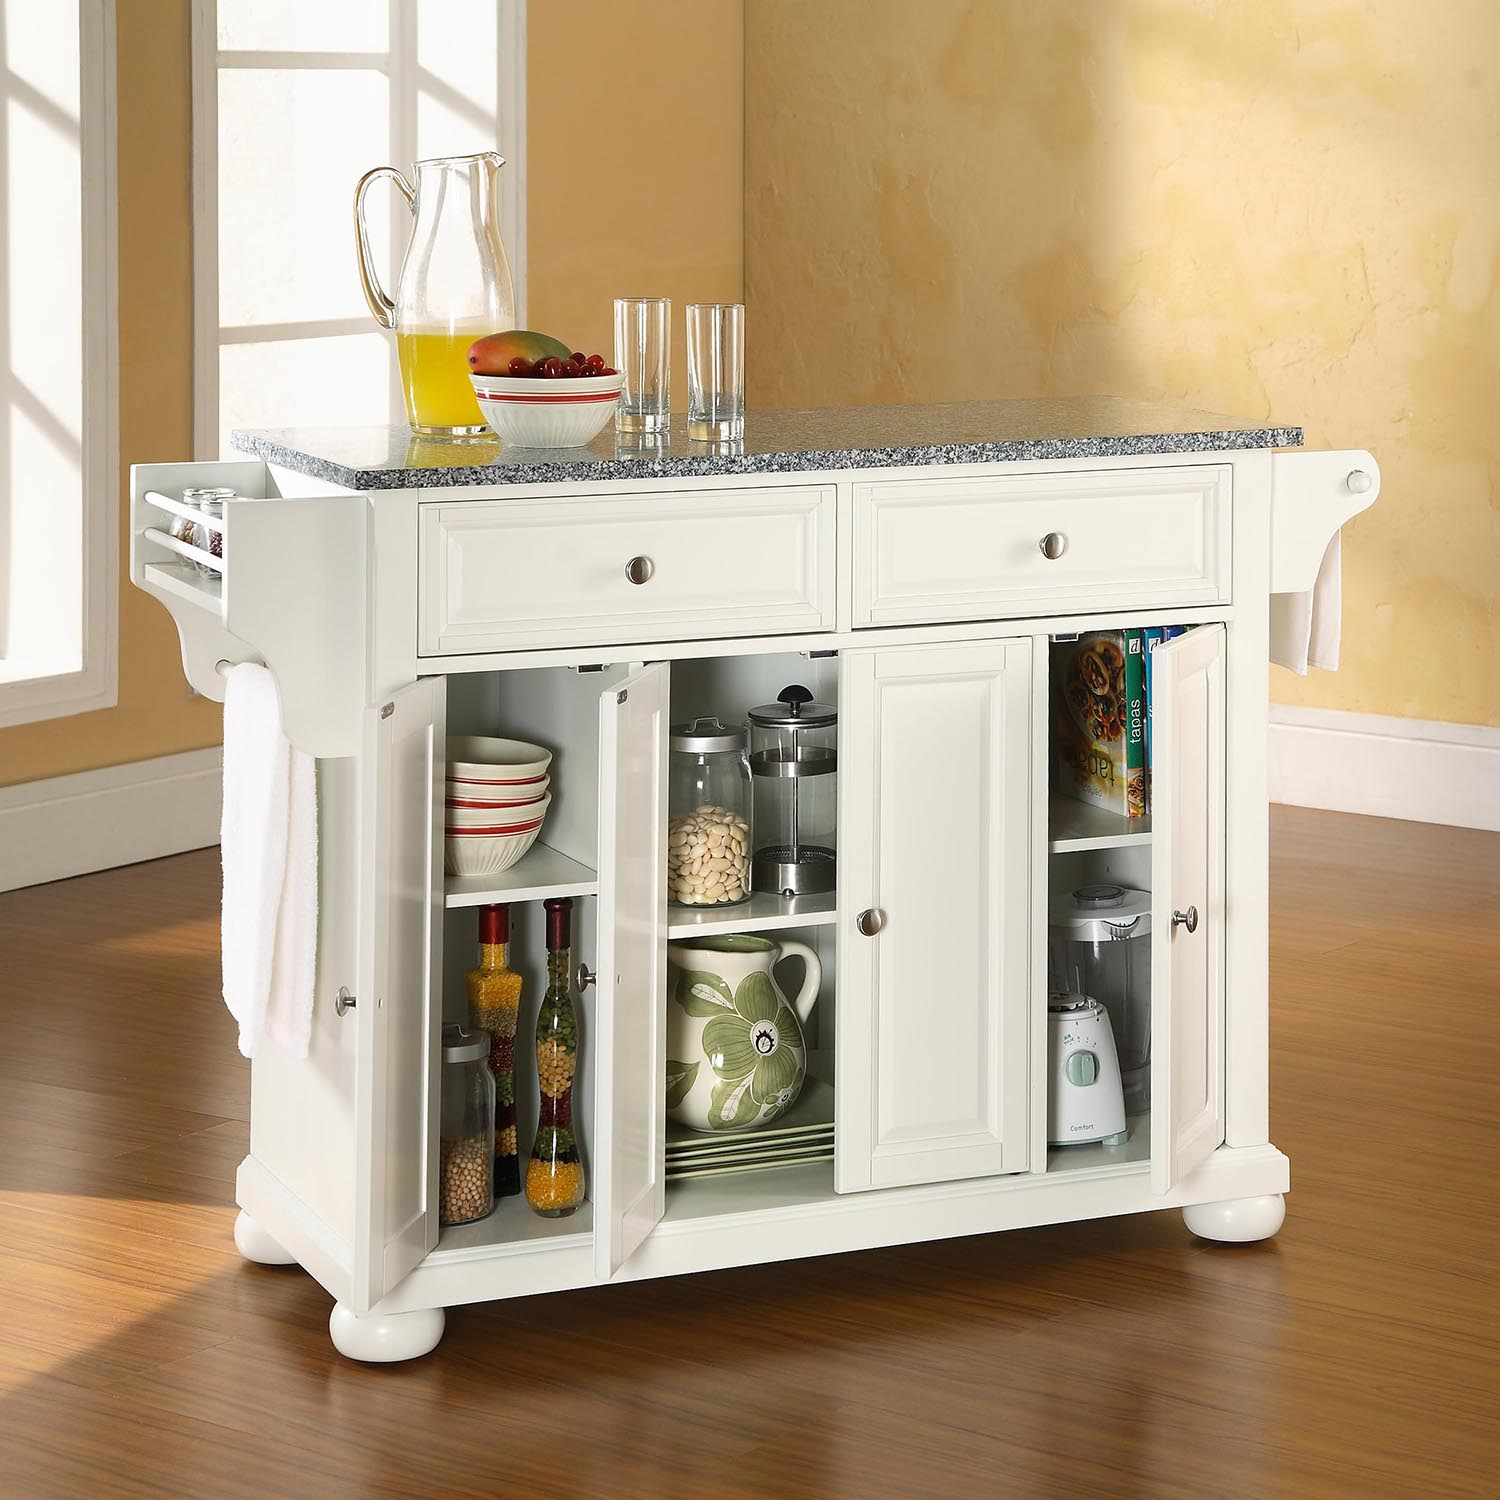 Alexandria Solid Granite Top Kitchen Island - White - CROS-KF30003AWH